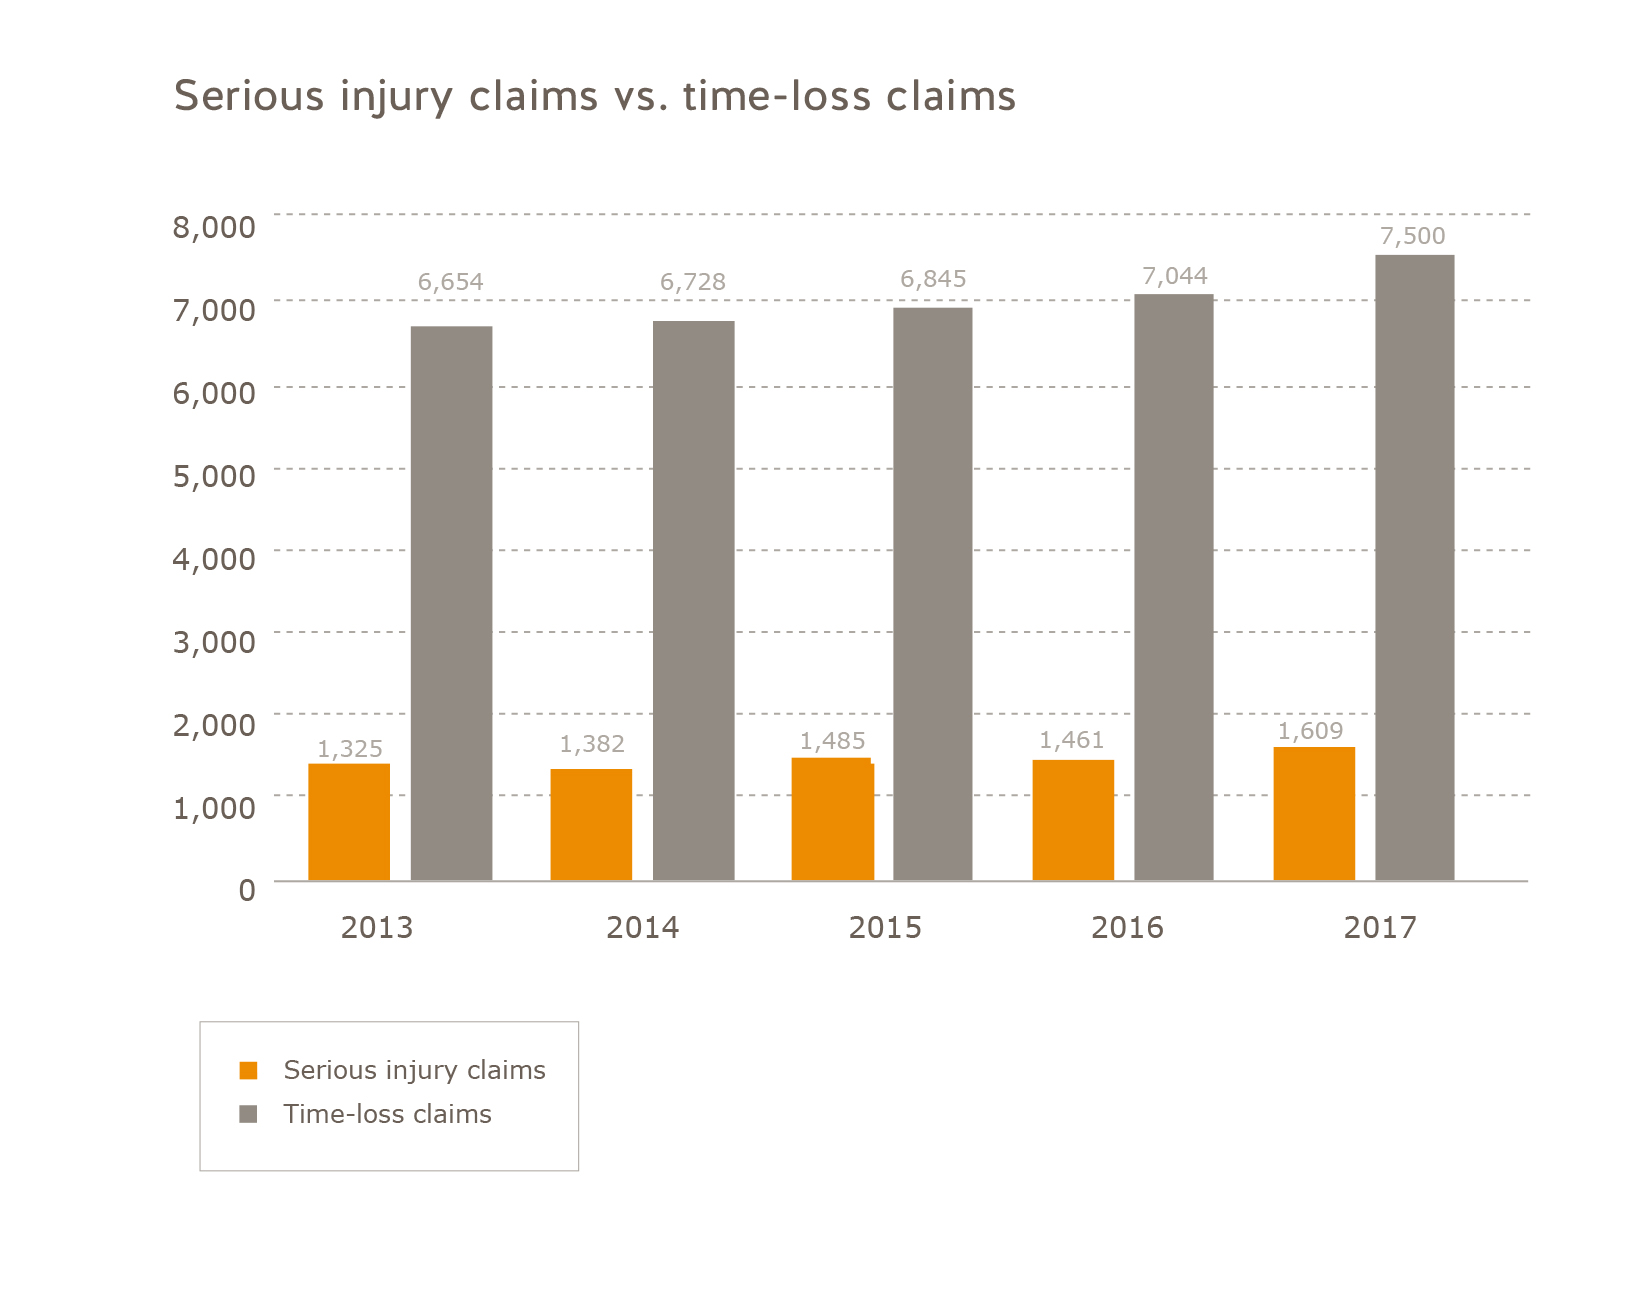 Number of serious injury claims vs. the number of time-loss claims construction sector 2013-2017. Number serious injury claims: 2013 = 1,325, 2014 = 1,382, 2015 = 1,485, 2016 = 1,461, 2017 = 1,609. Number time-loss claims: 2013 = 6,654, 2014 = 6,728, 2015 = 6,845, 2016 = 7,044, 2017 = 7,500.